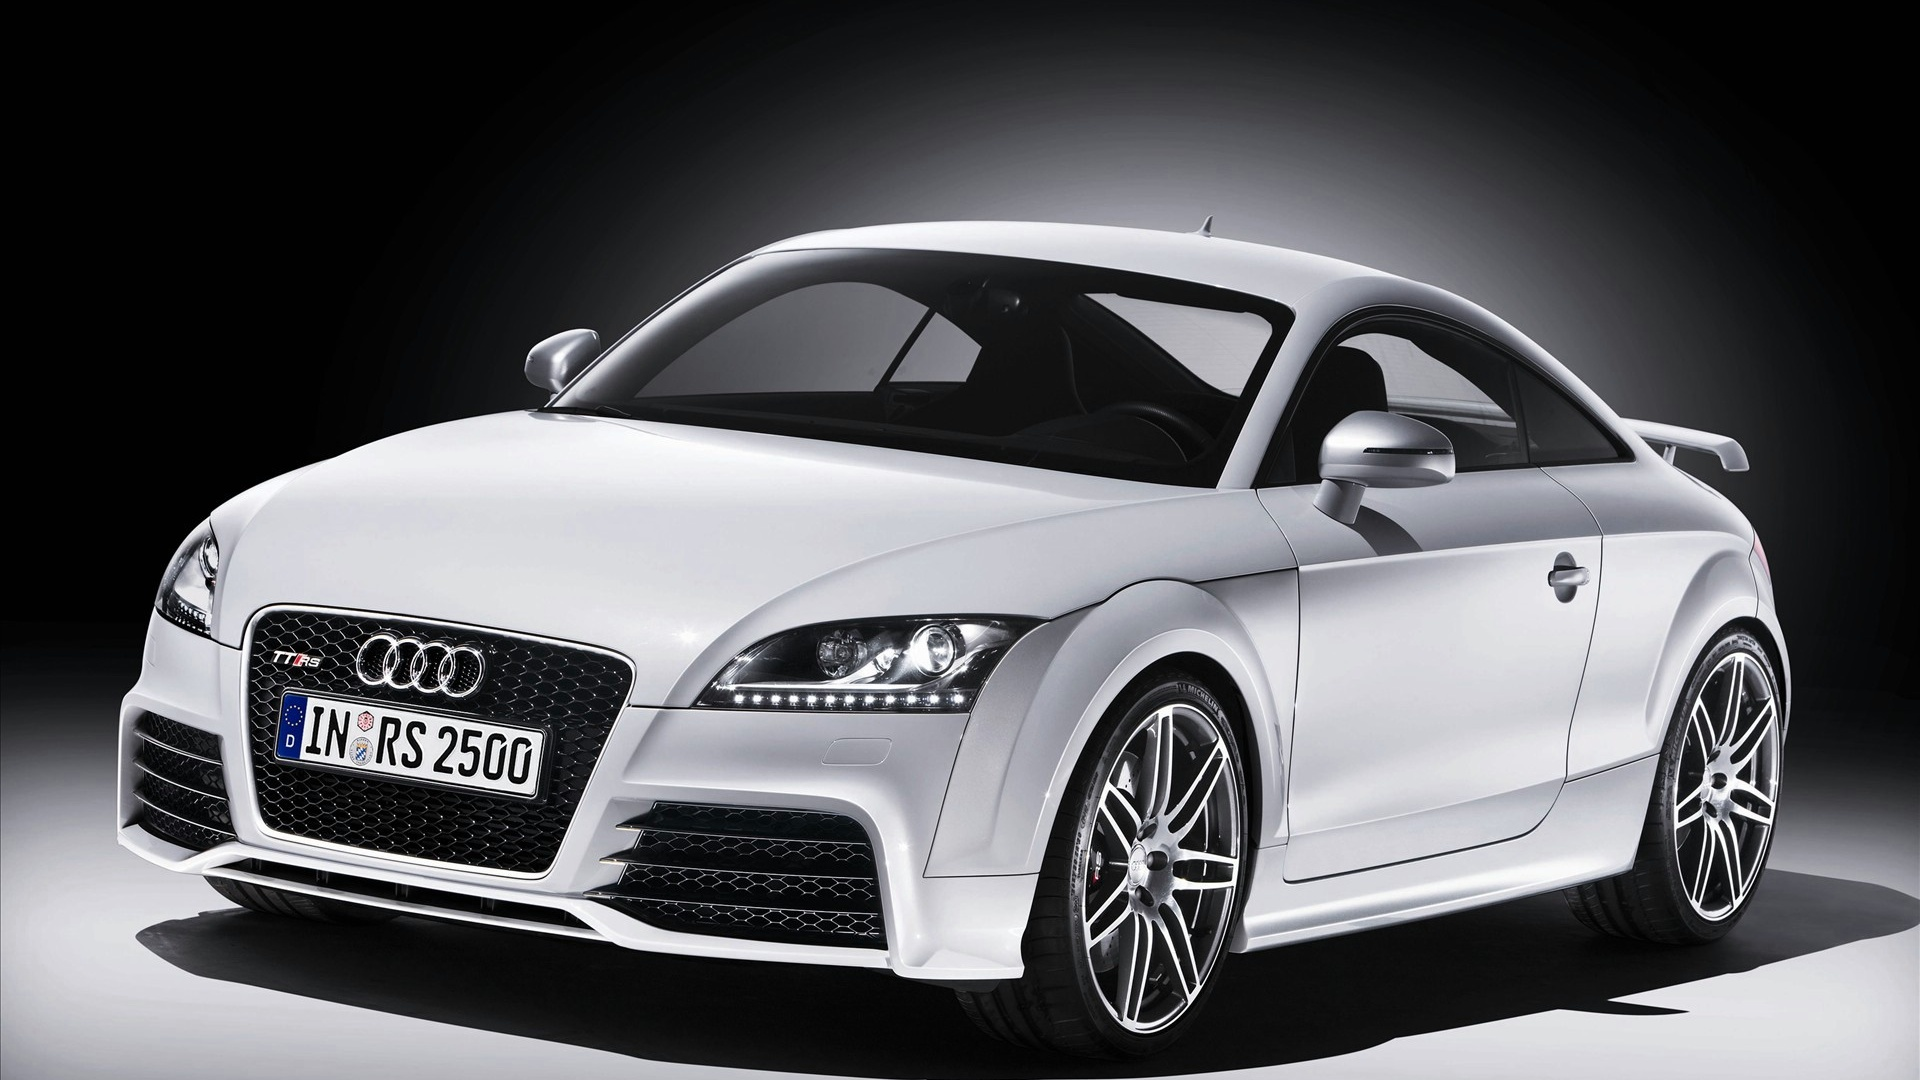 2010 Audi Tt Rs Coupe 6